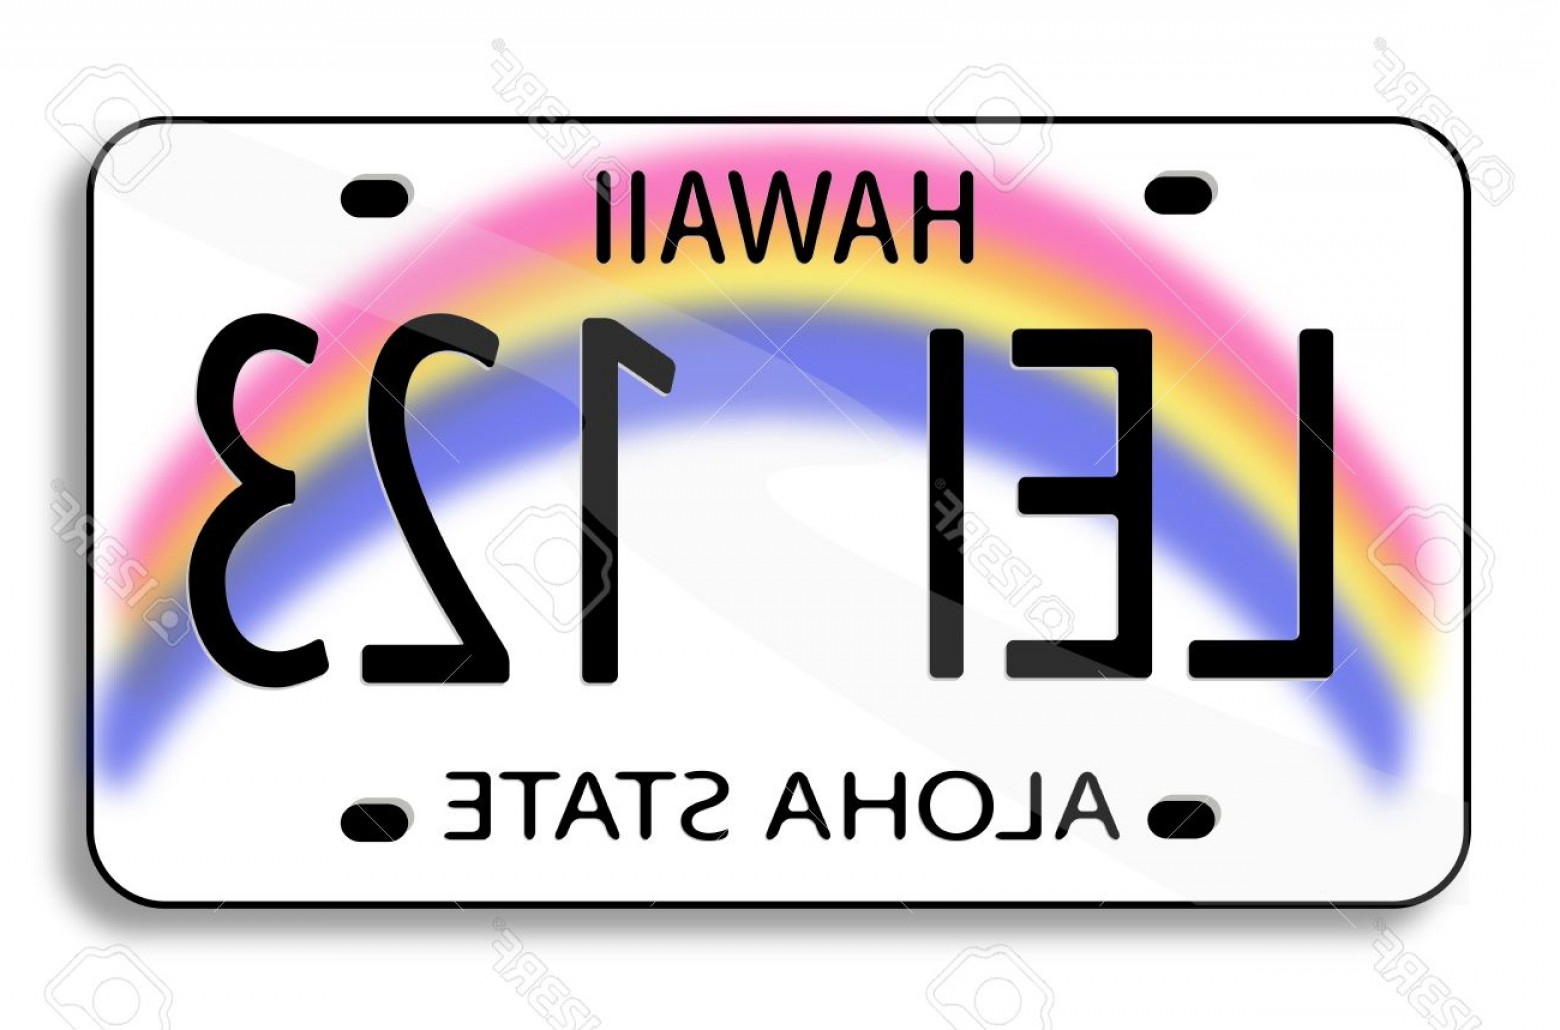 Florida License Plate Vector Art: Photovector Illustration Of A License Plate From Hawaii